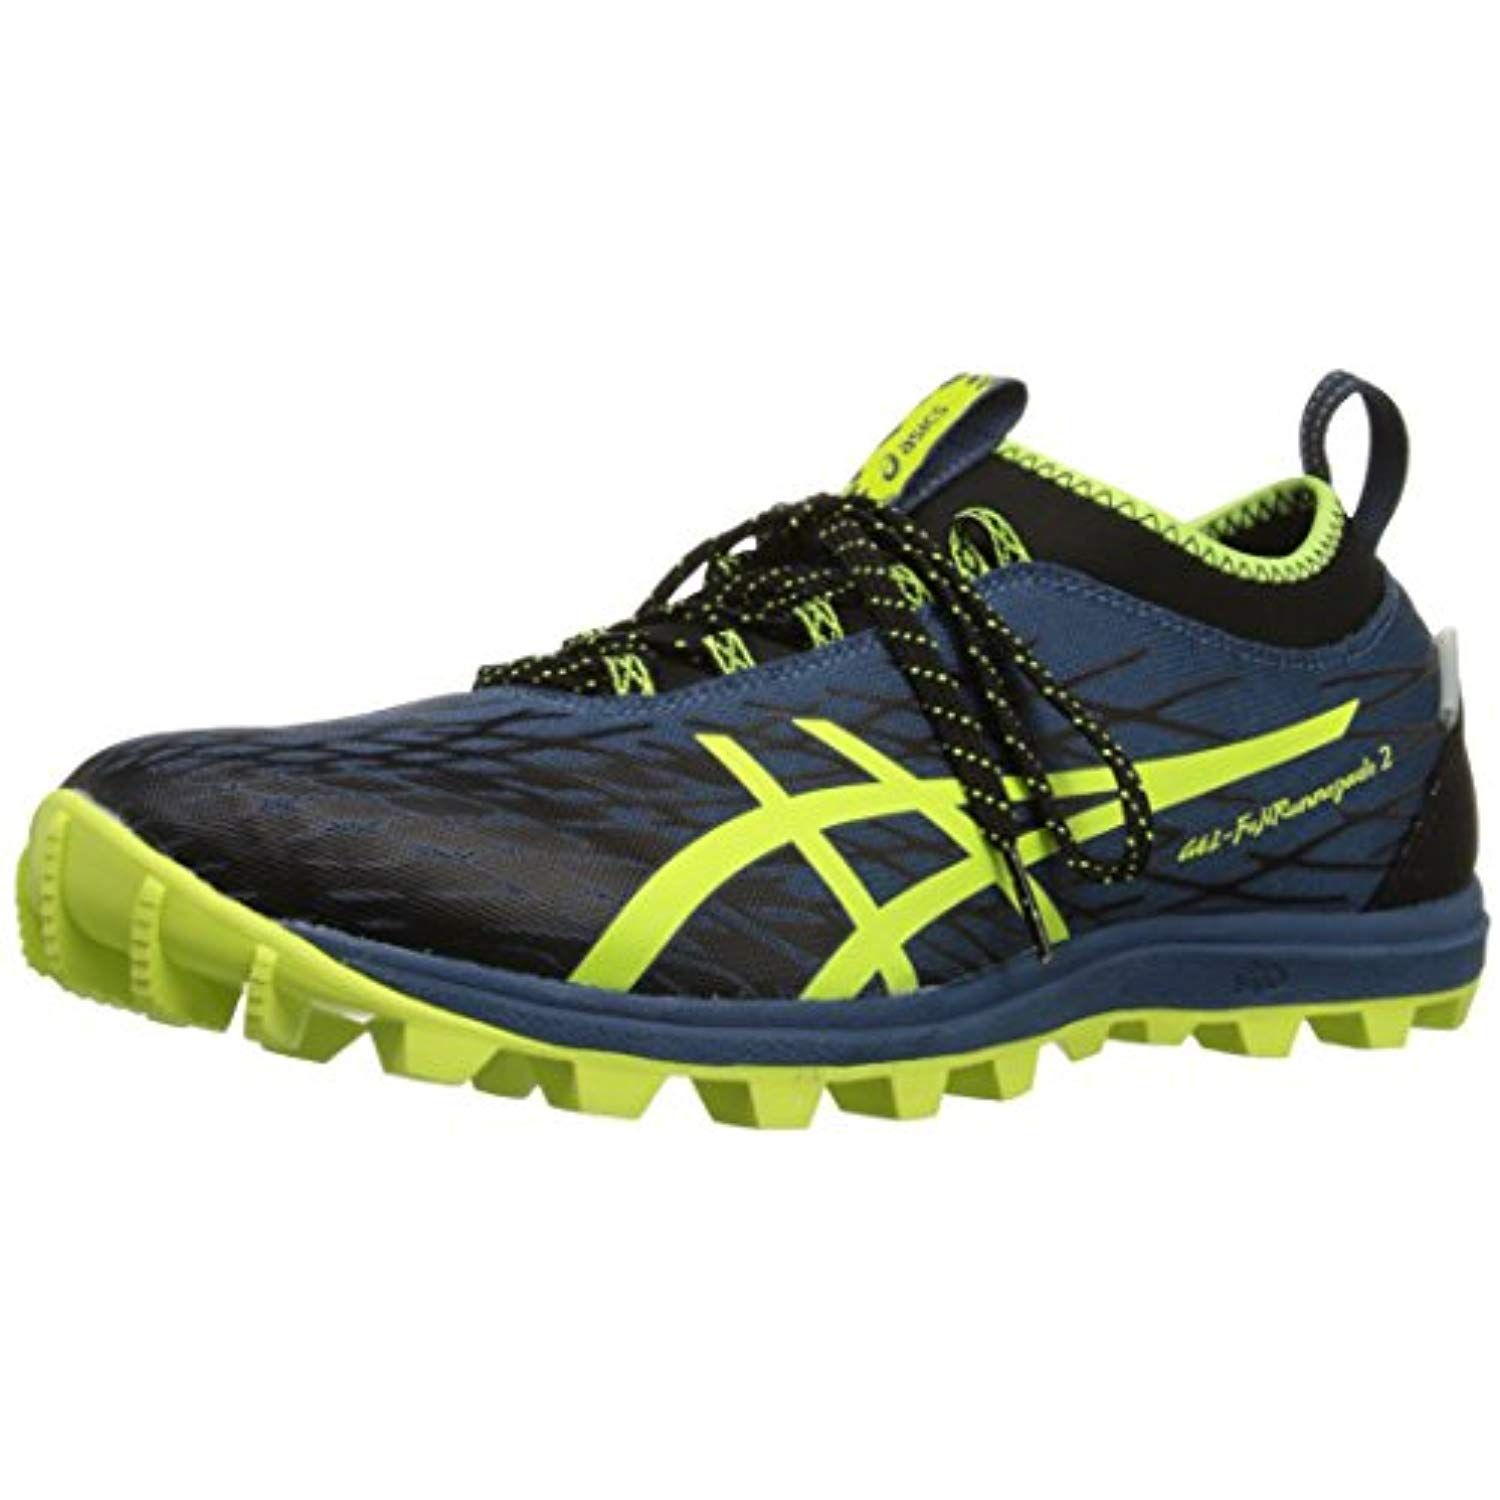 Asics Men S Gel Fuji Runnegade 2 Running Shoe Details Can Be